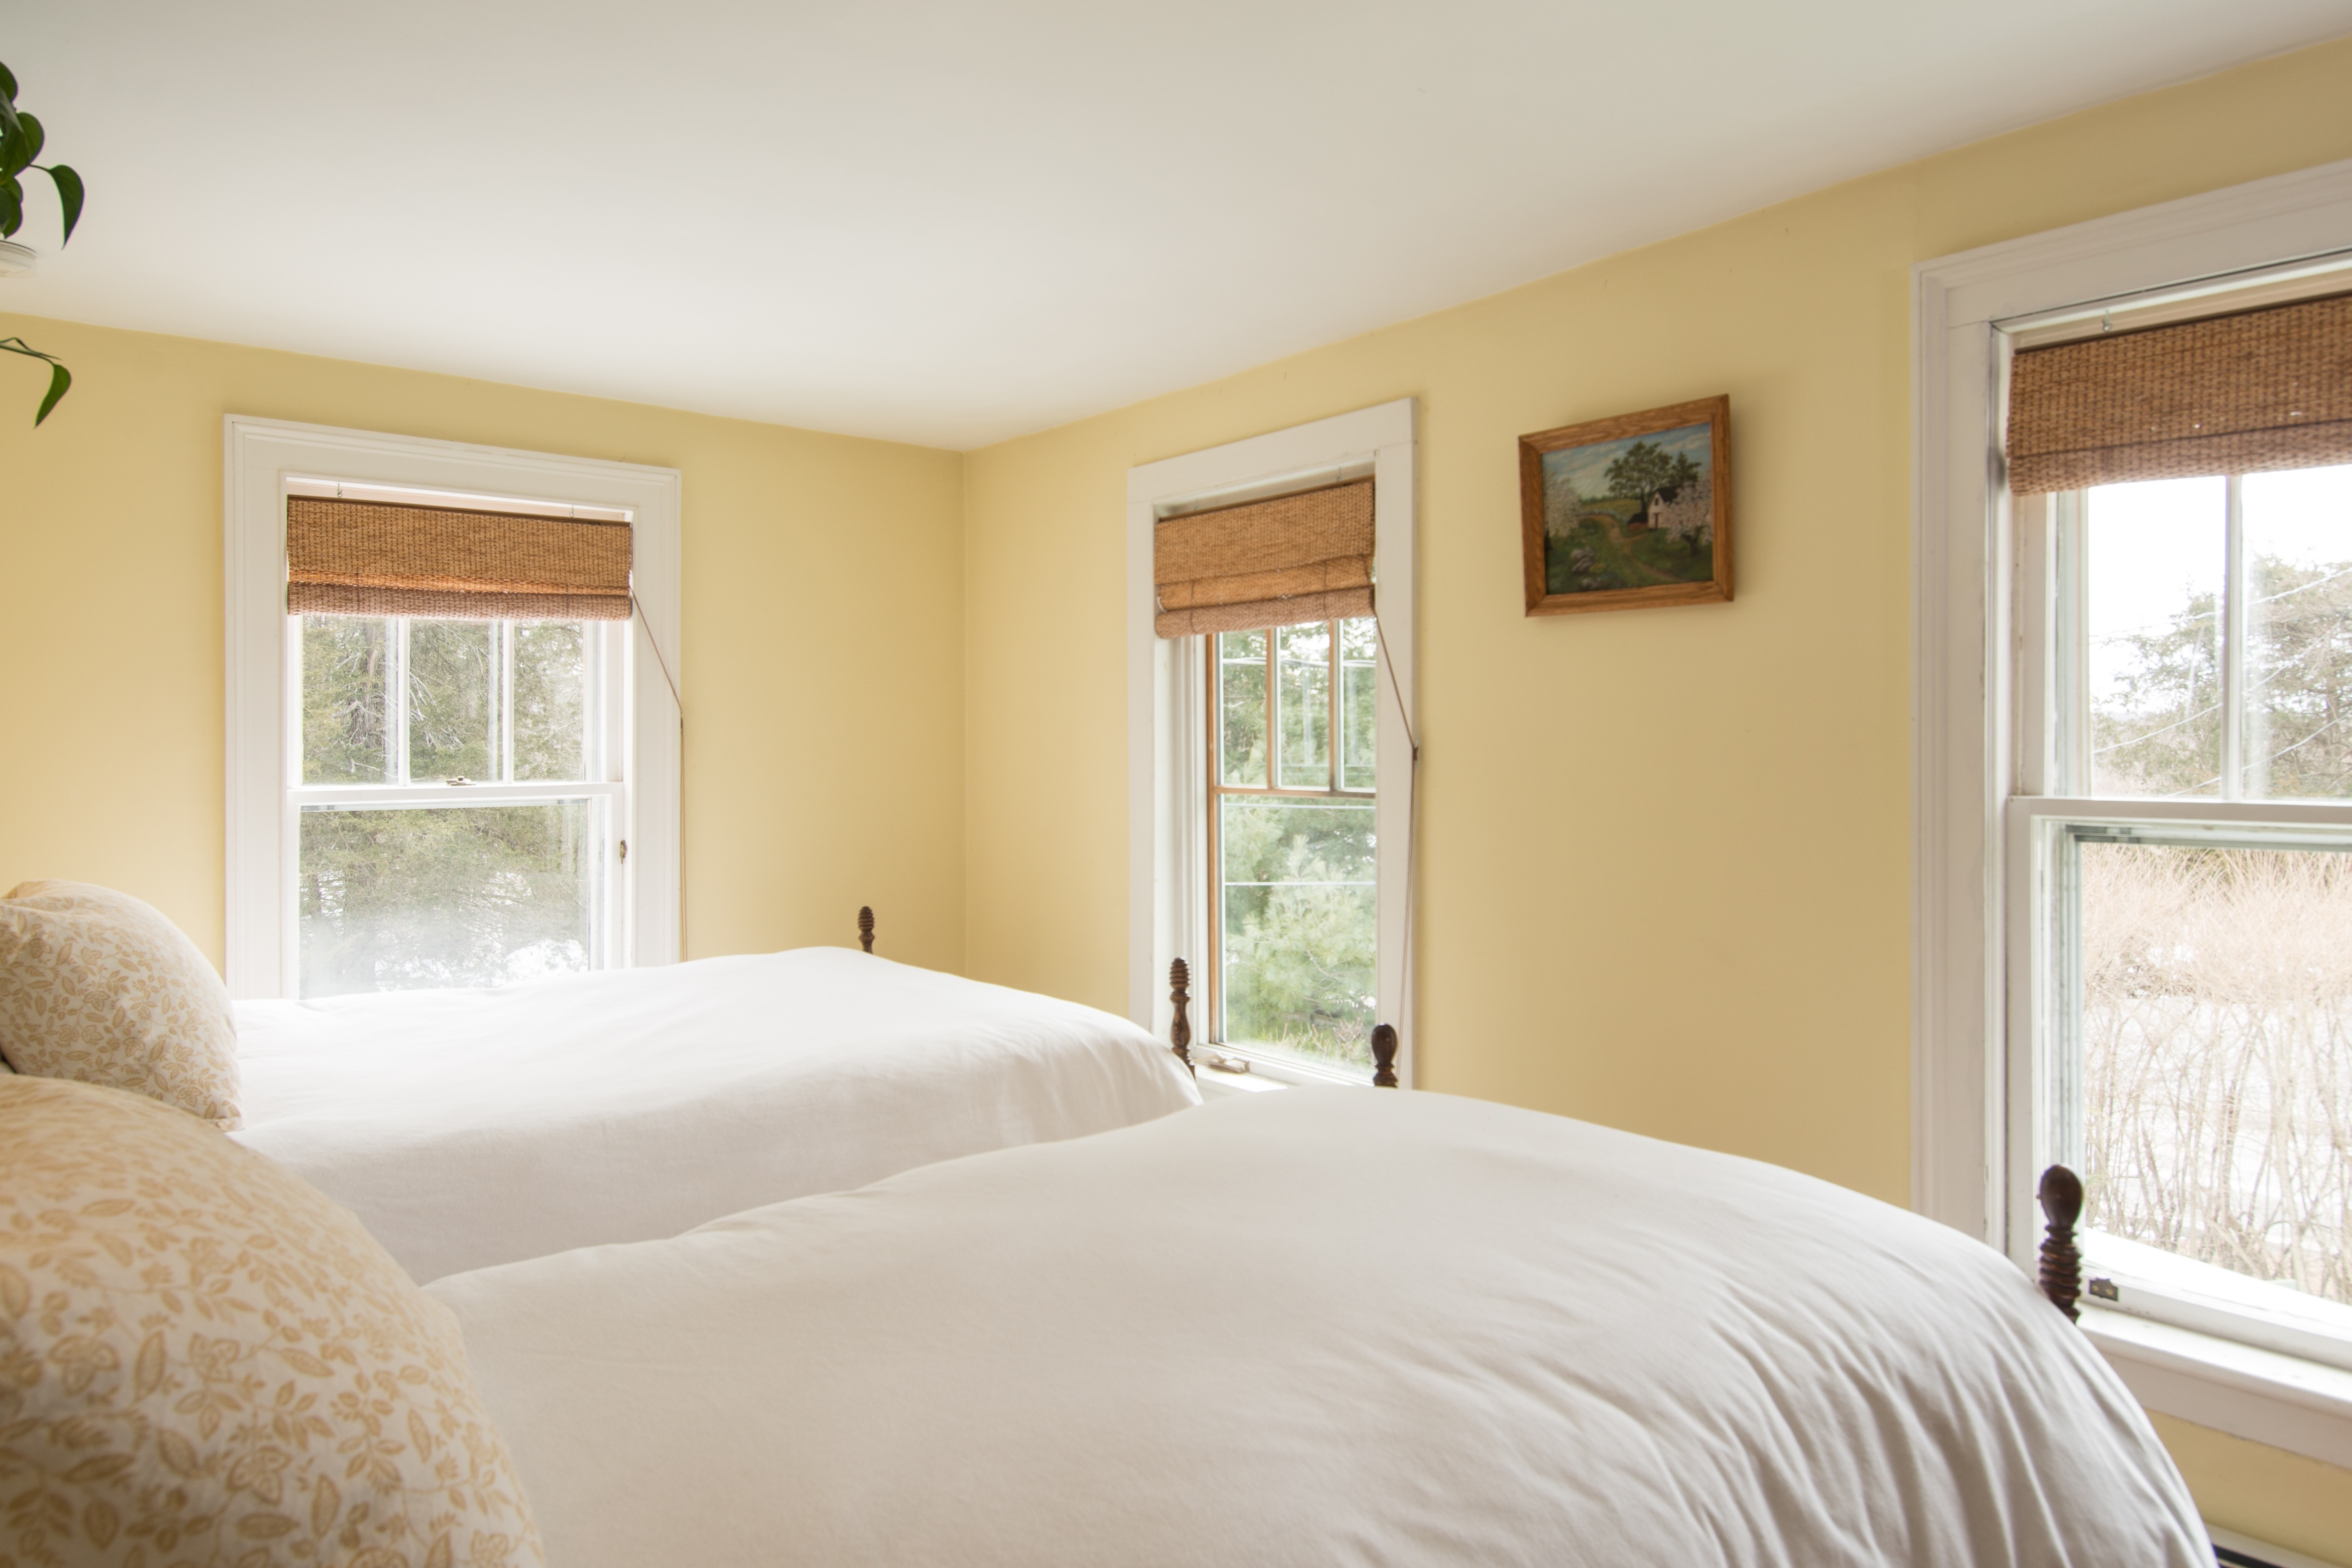 bedroom photo containing 2 twin sized beds and 2 windows and pale yellow walls